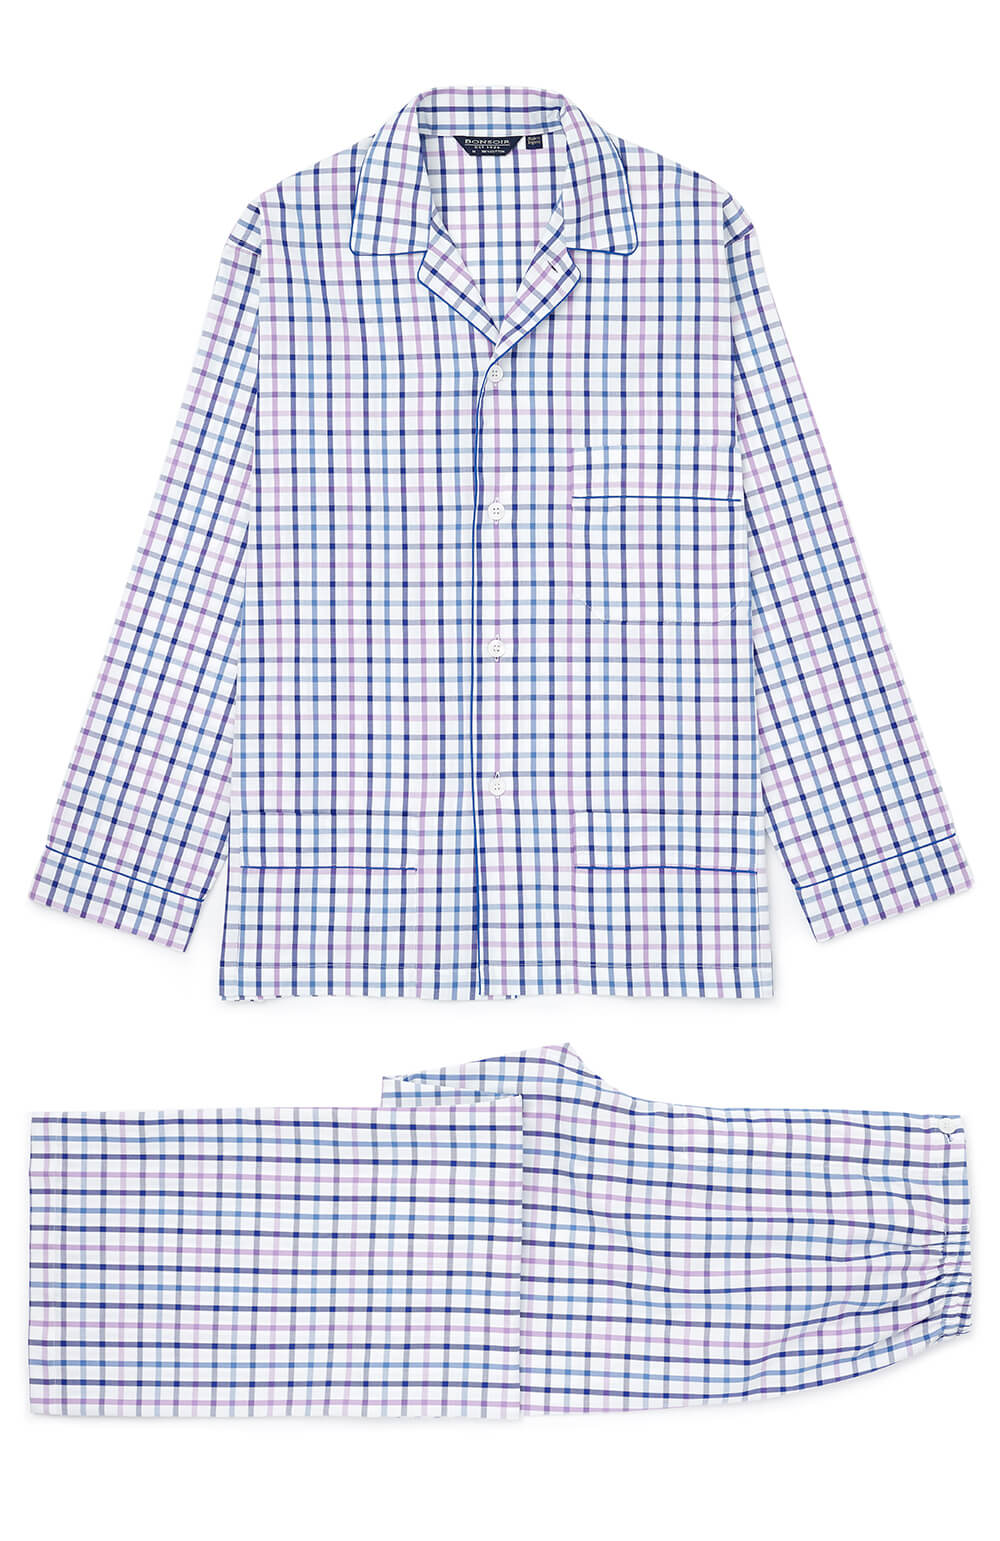 Men's Two-Fold Cotton Pyjamas (2mpe) - Tf32